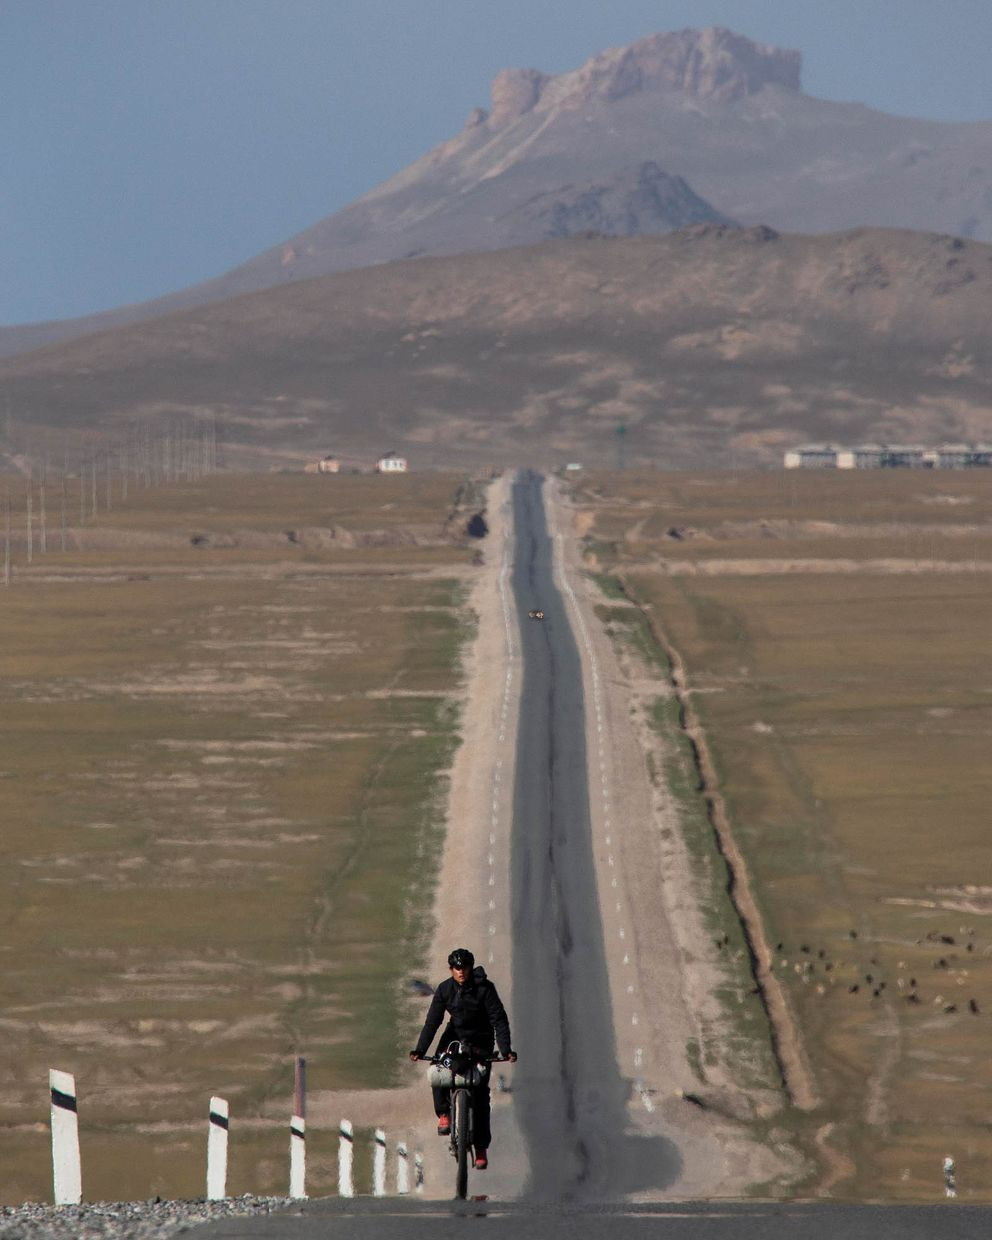 Lael Wilcox rides on the Chinese Highway on day three of the Silk Road Race in Kyrgyzstan. (Courtesy Rugile Kaladyte)